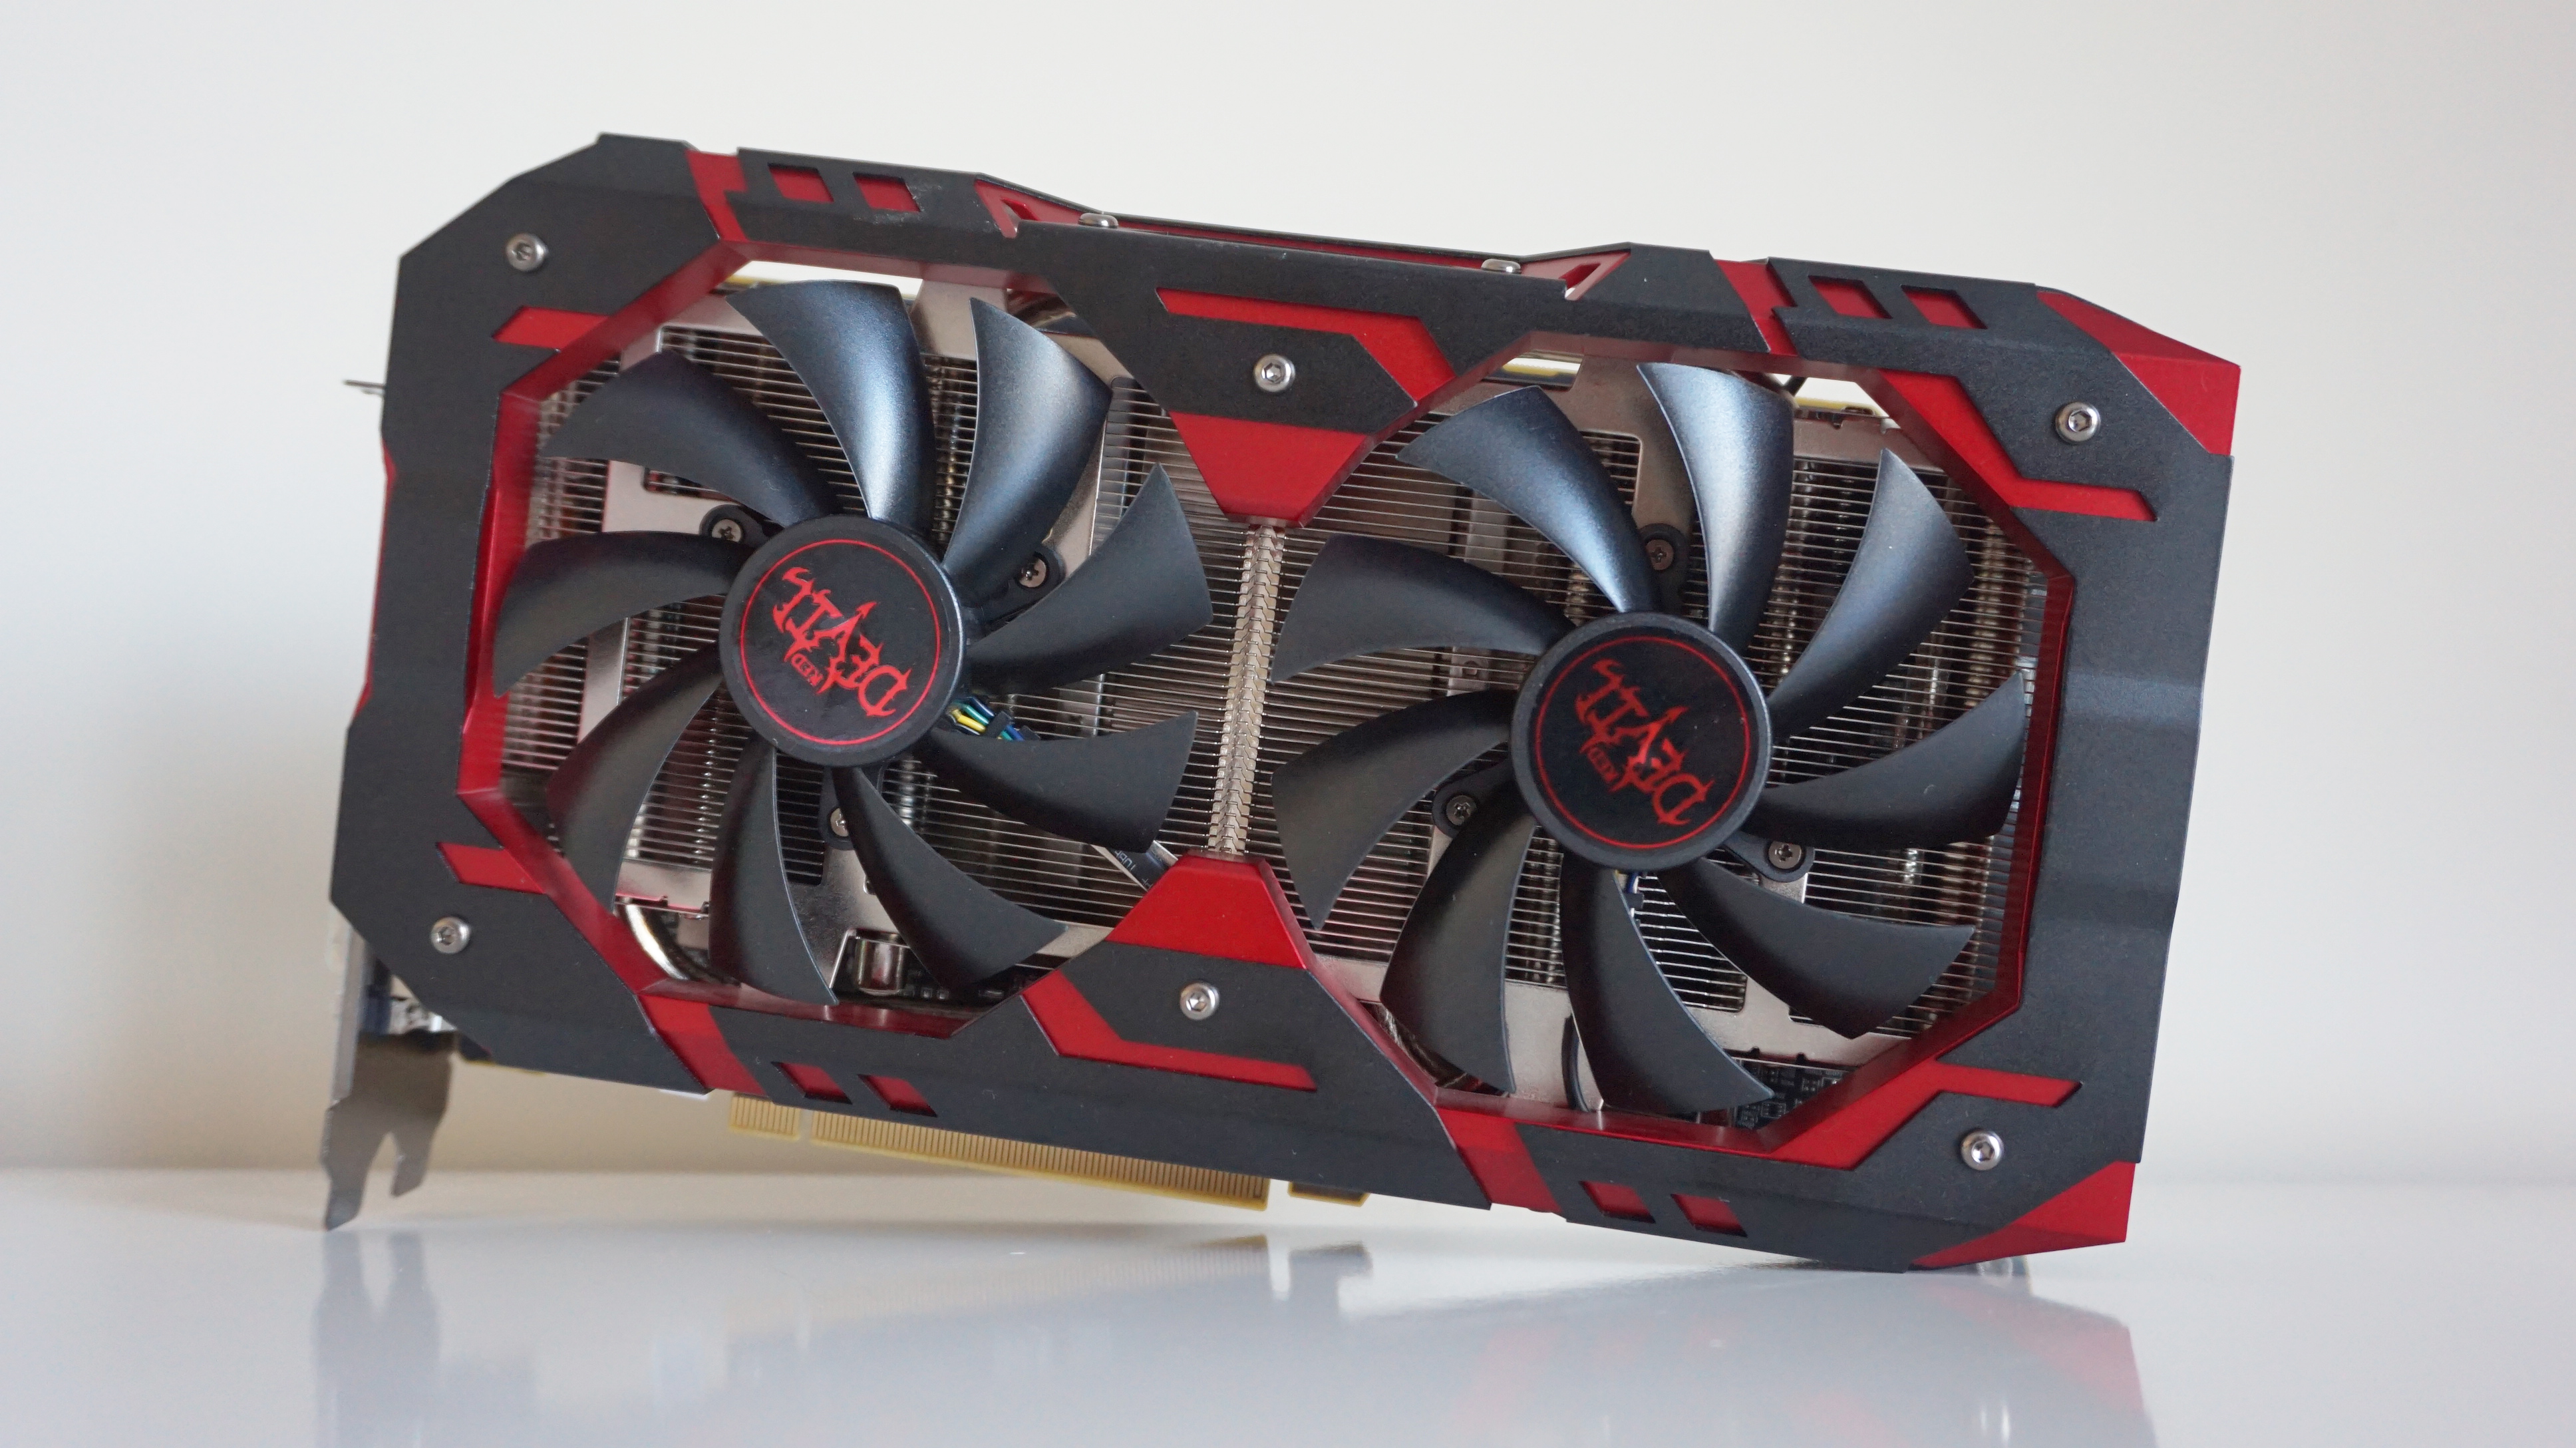 A photo of the Powercolor Radeon RX 590 Red Devil graphics card.